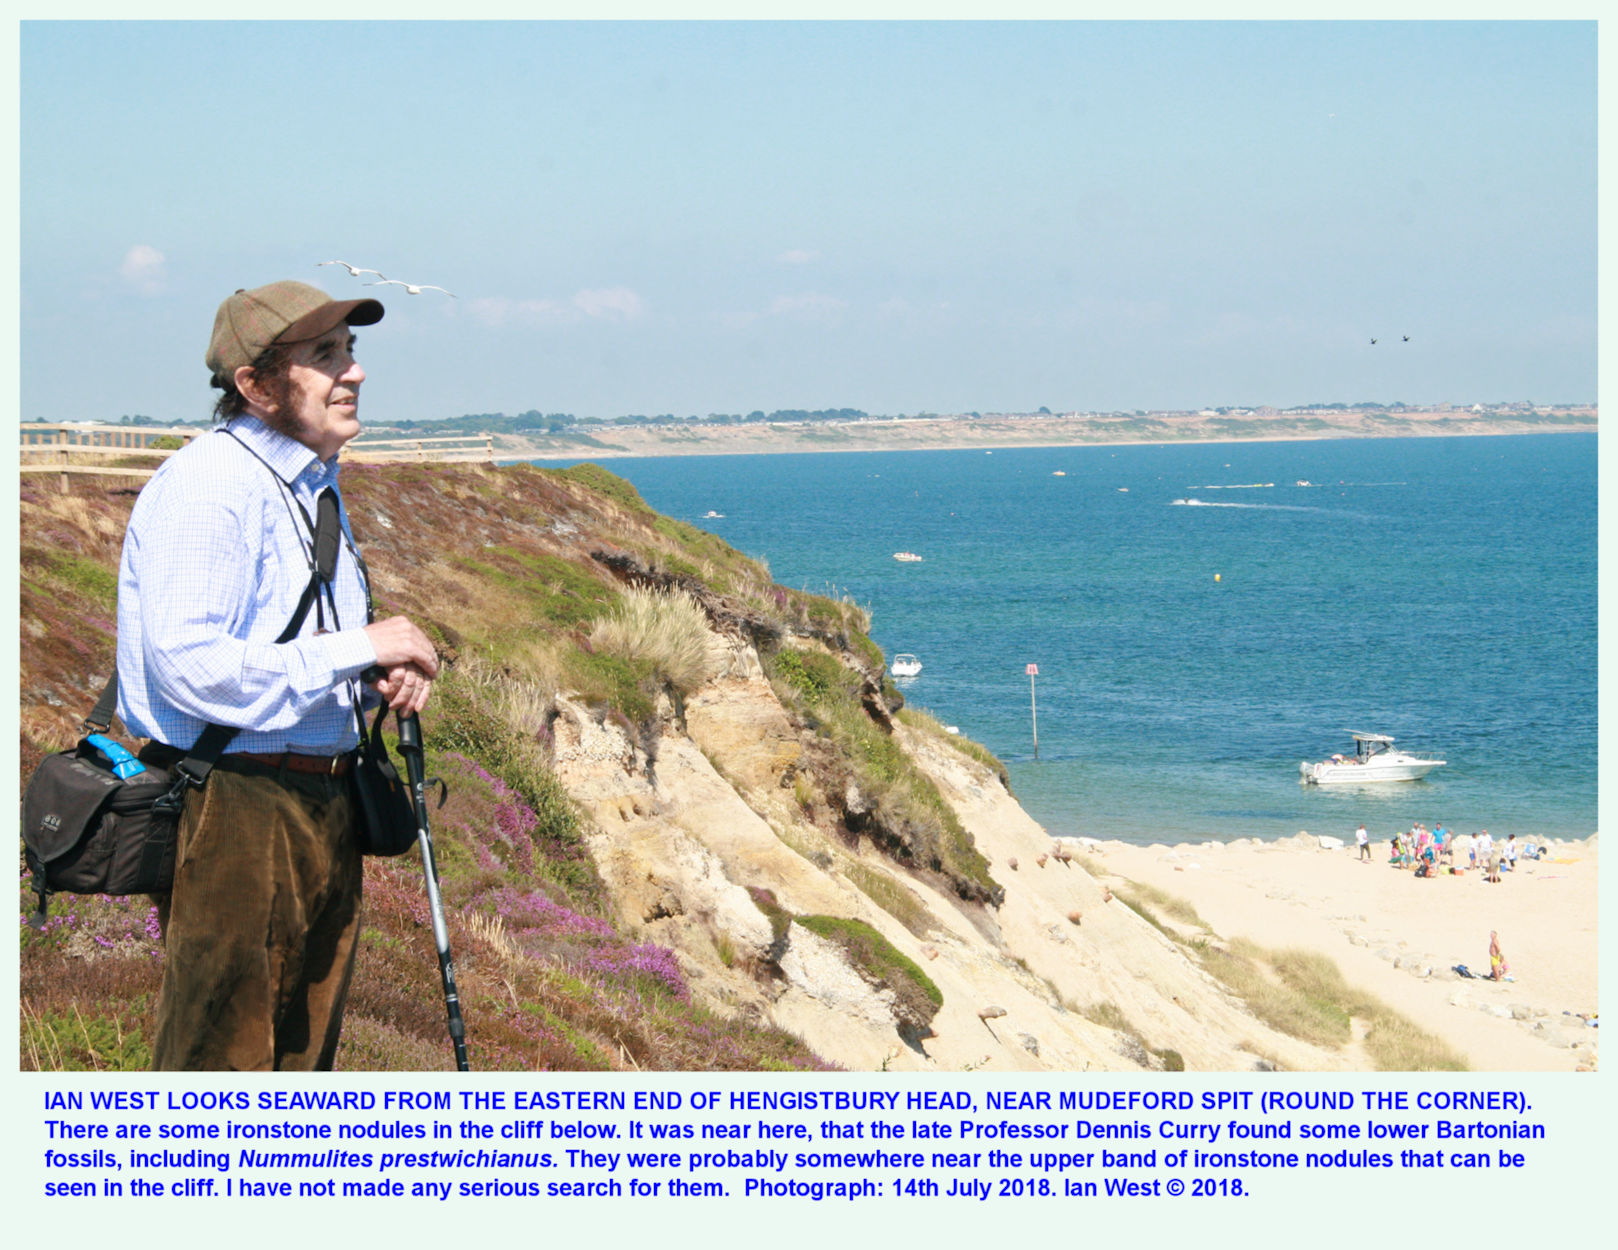 Ian West at the far eastern end of Hengistbury Head, near Mudeford Spit, on a hot sunny day, 14th July 2018